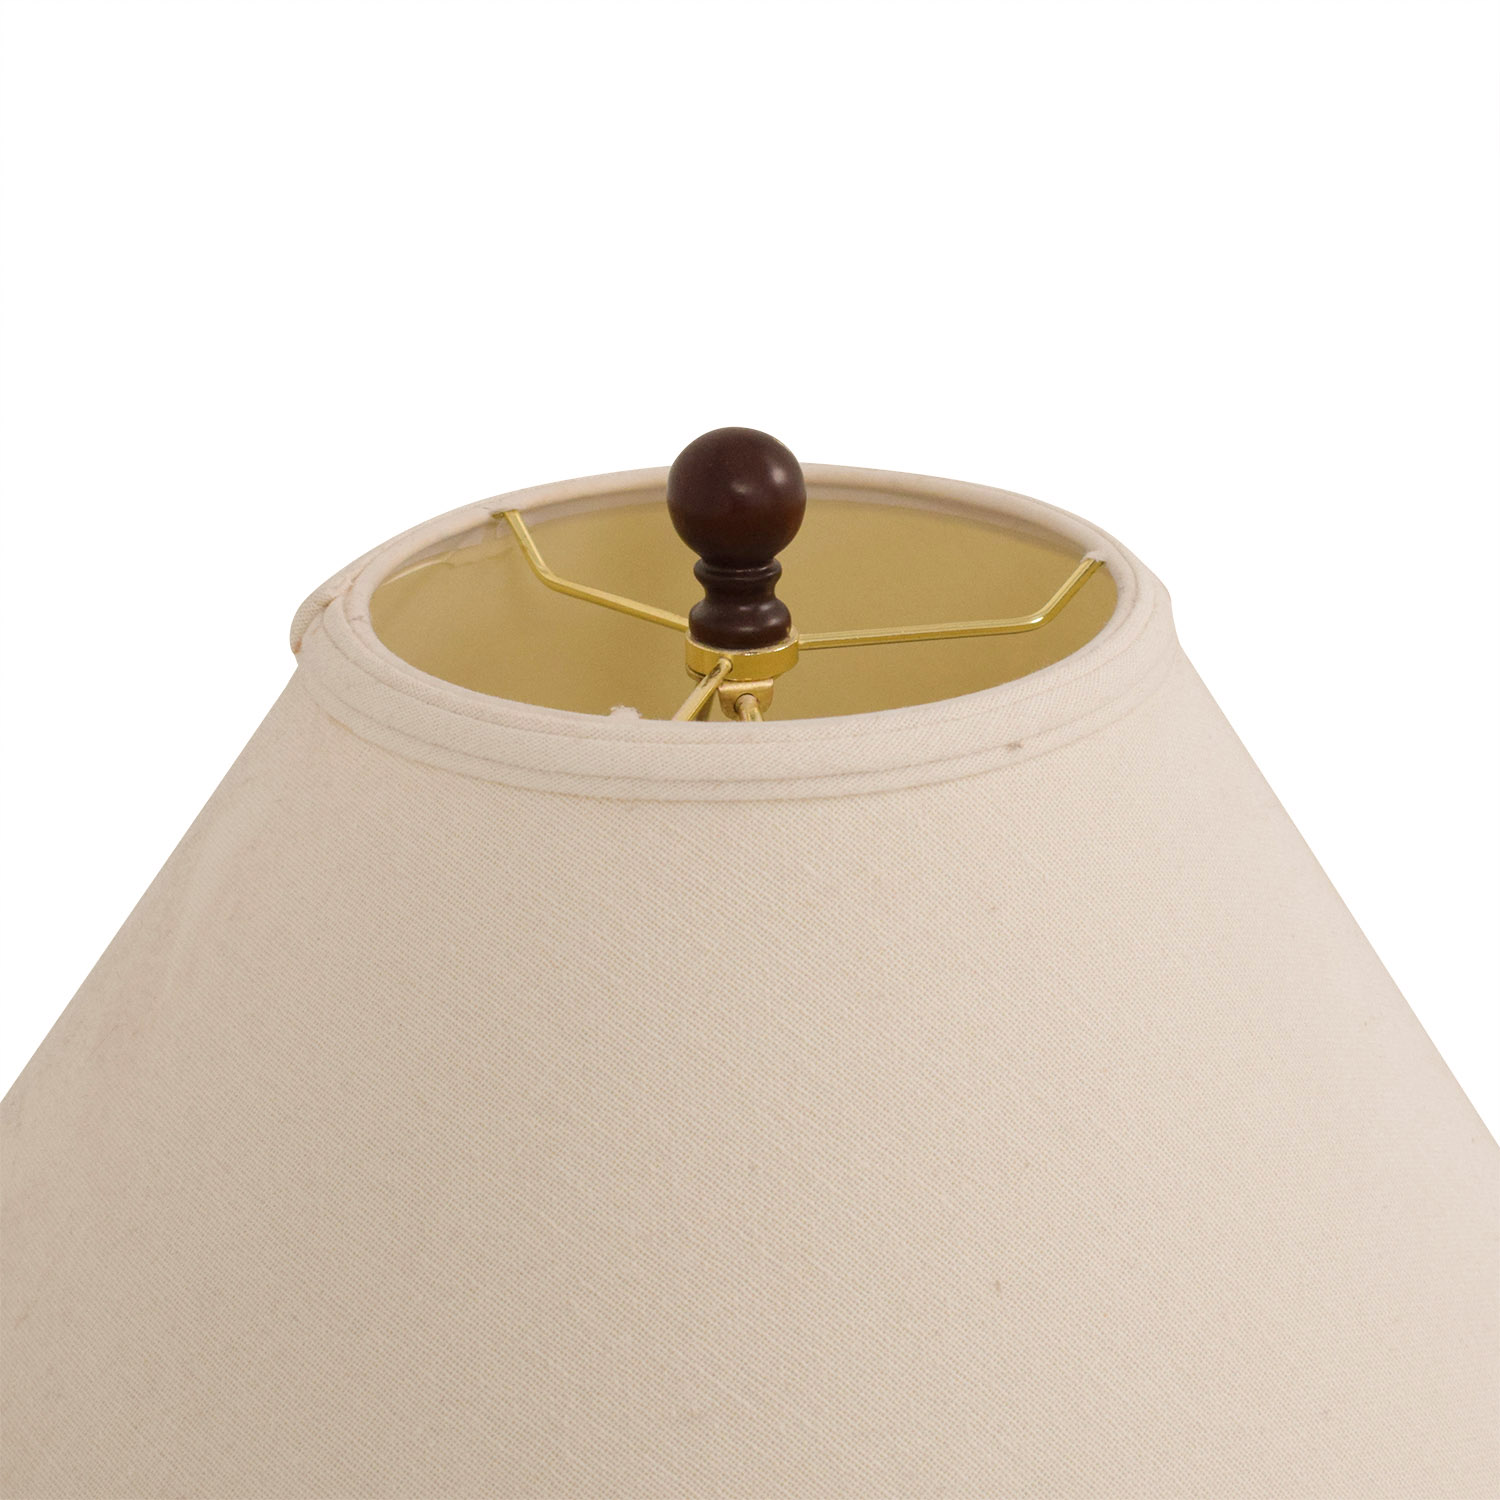 Bedside Table Lamps second hand